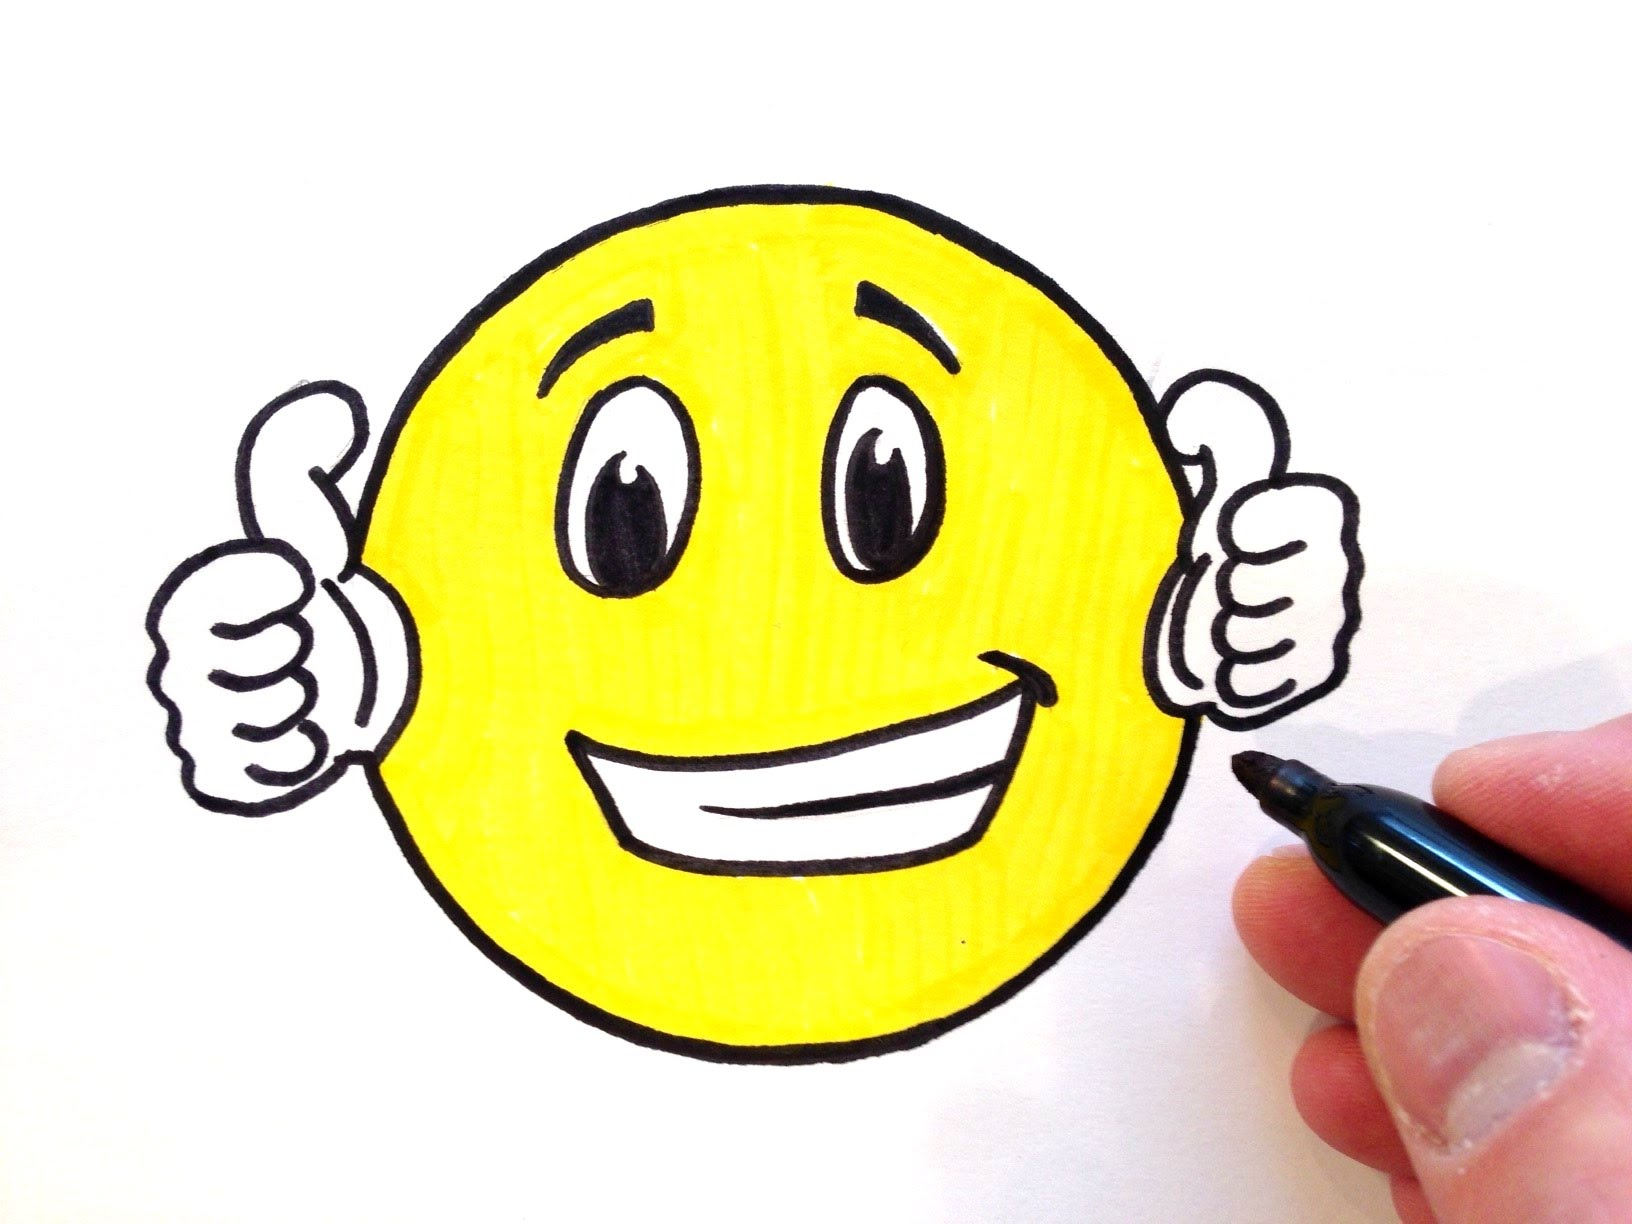 thumbs up drawing at getdrawings com free for personal use thumbs rh getdrawings com Thumbs Up Thumbs Down Clip Art Snow Smiley Face Clip Art Free